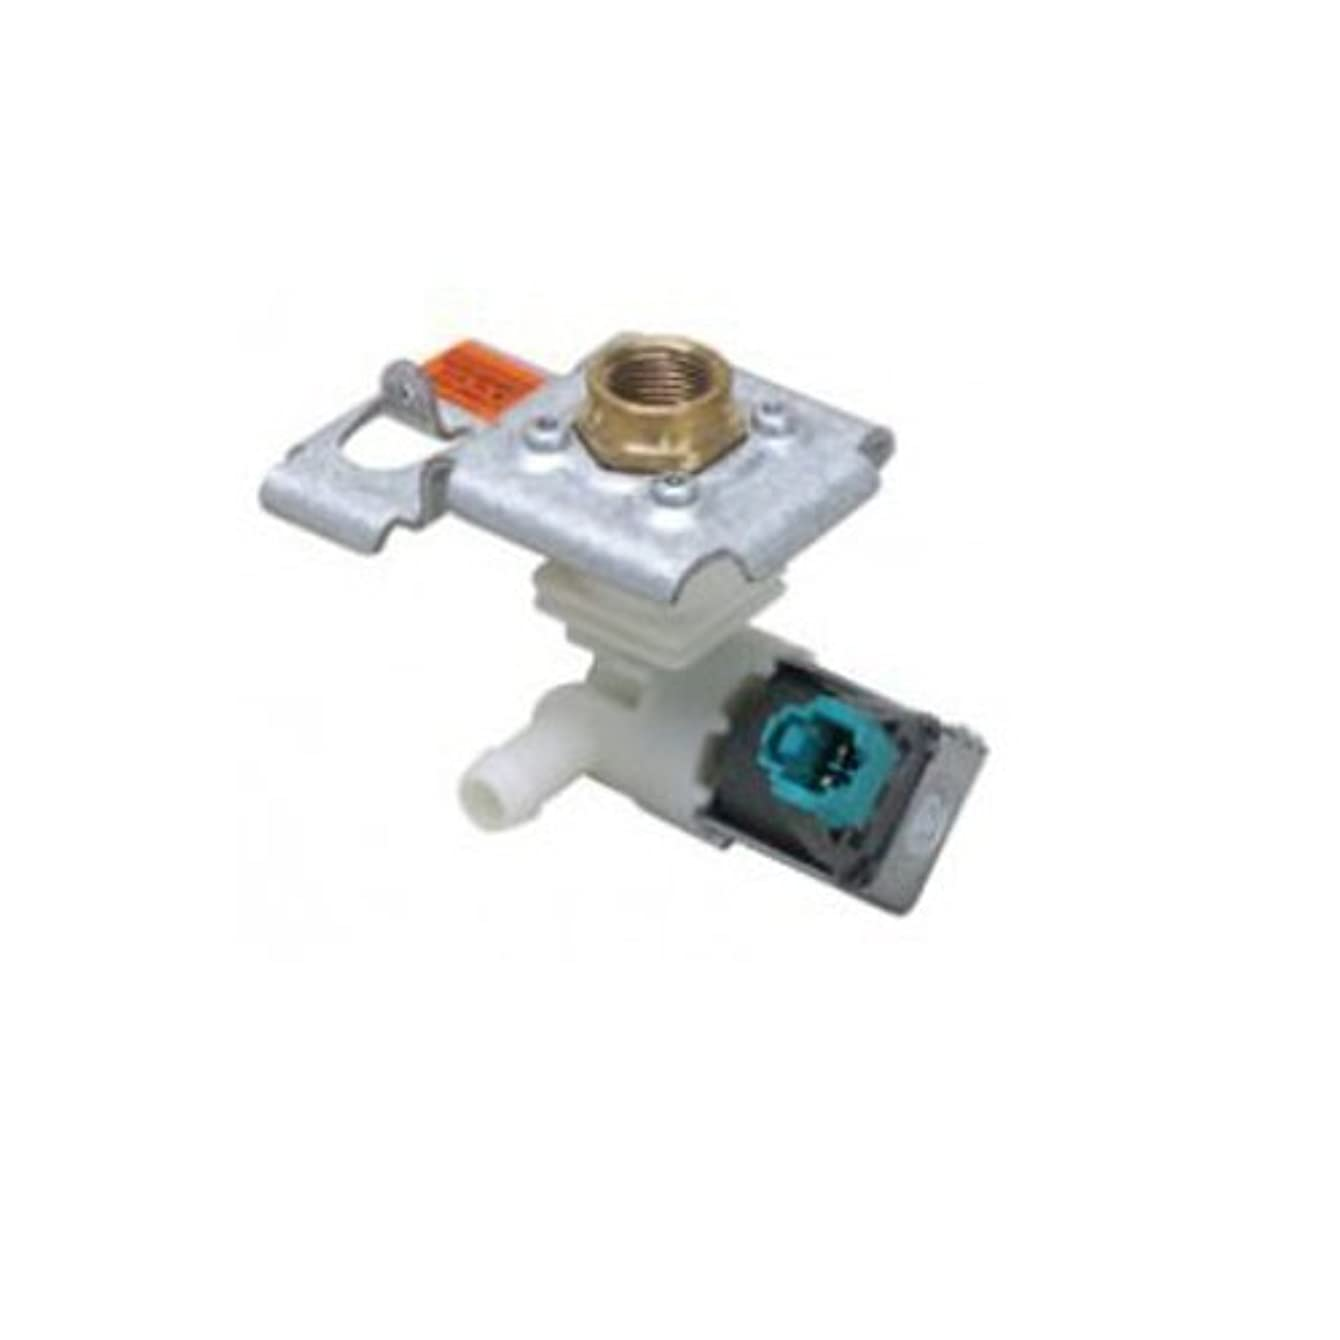 W10158387 - Whirlpool Aftermarket Replacement Dishwasher Water Valve